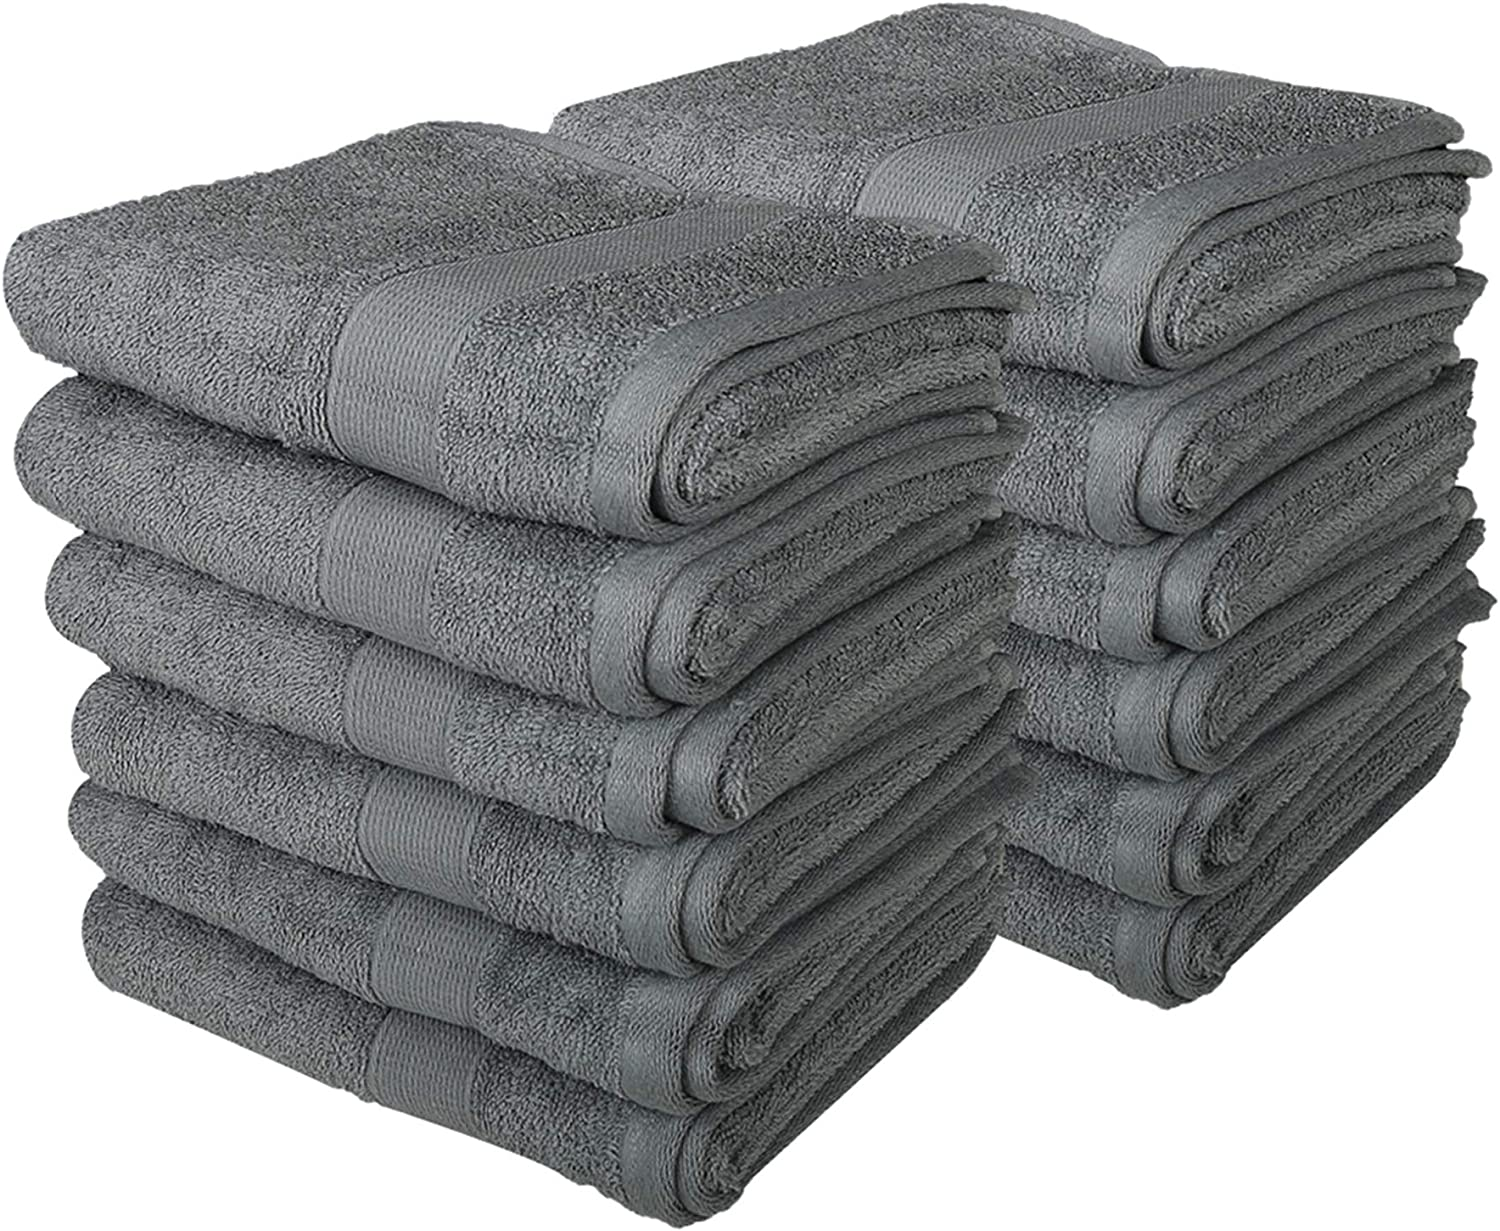 Pack of 6 16x28 Inches 100/% Cotton Luxurious Daily Use Towels for Bathroom and Kitchen Soft Extra Large Hand Towels White